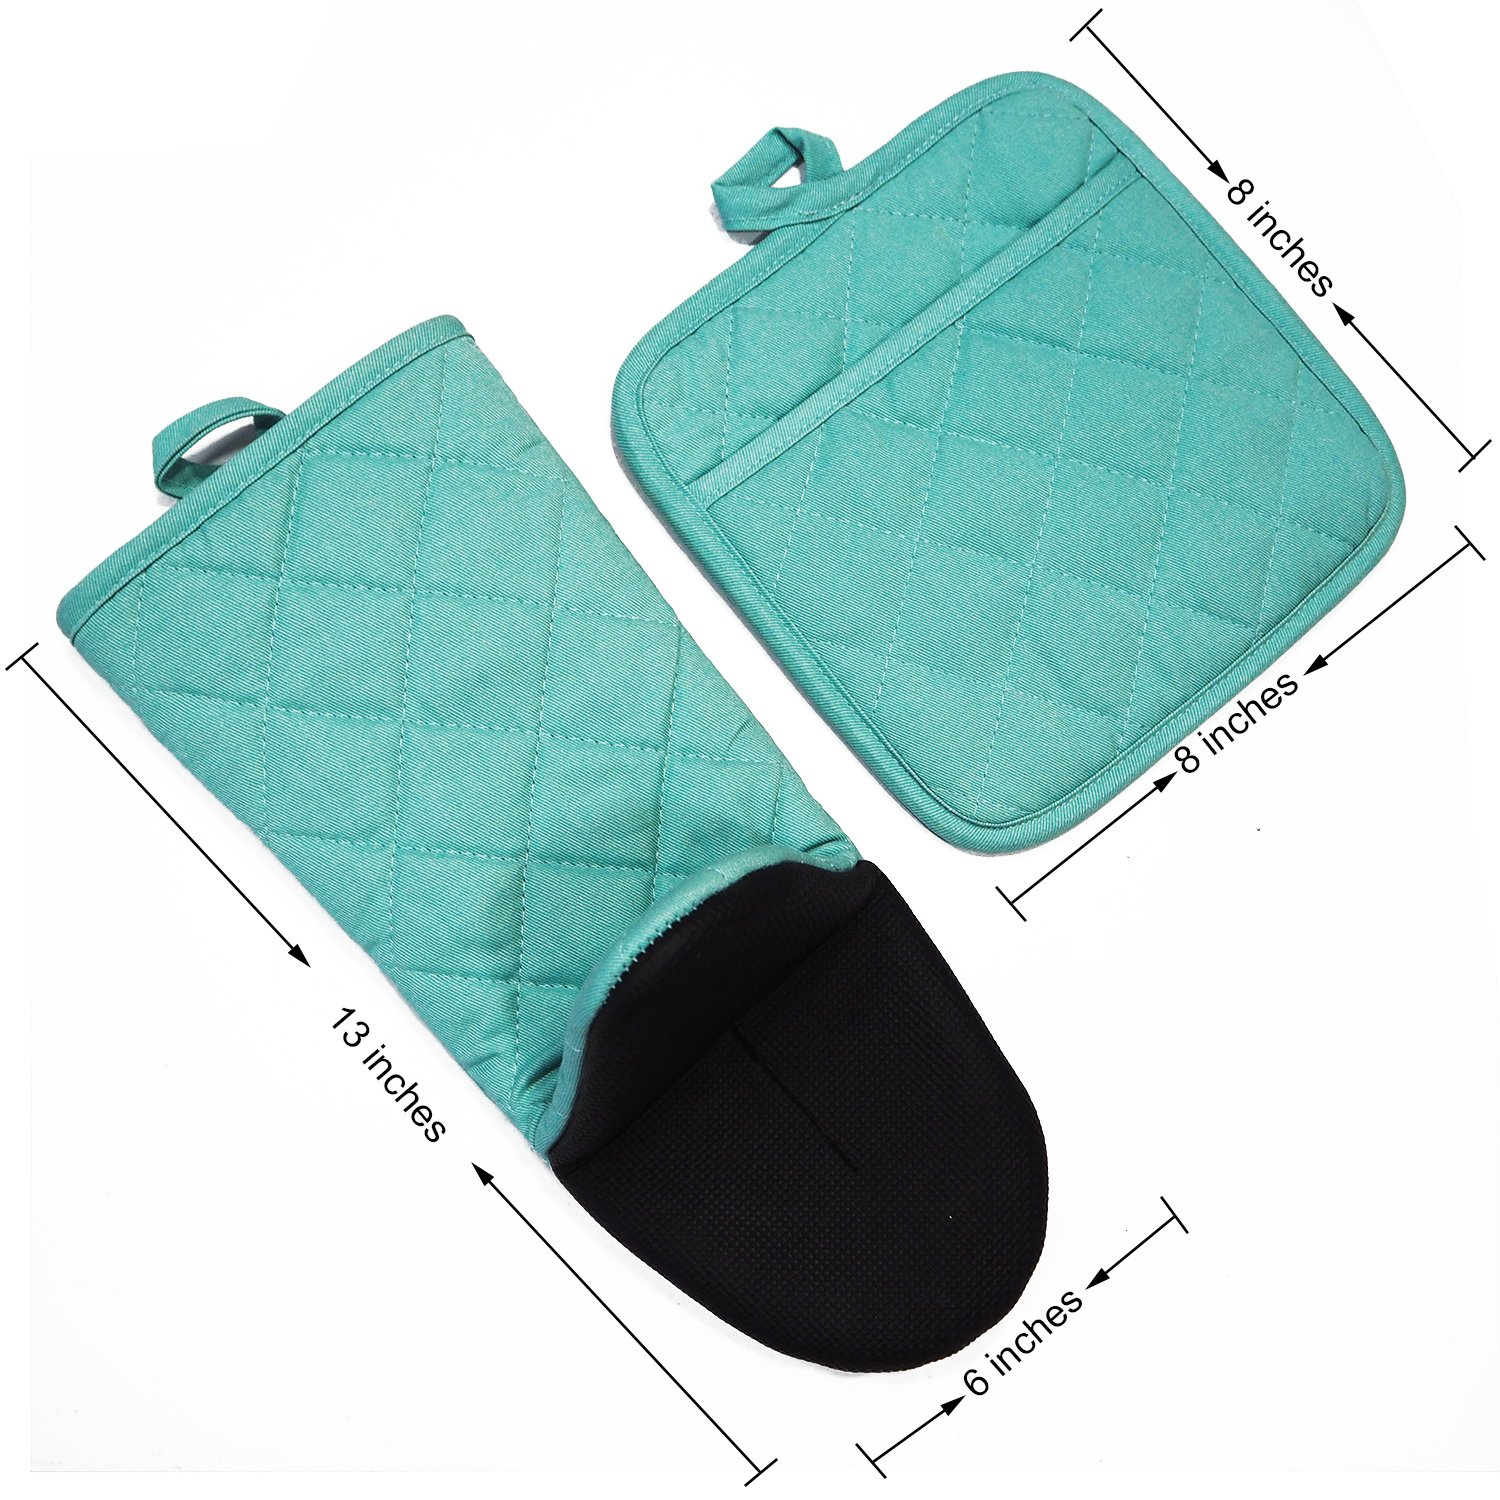 DETA HOME Cotton Oven Mitt & Pot Holder Kitchen Set With Neoprene Non-Slip Grip, Heat Resistant, 2pcs set (Neoprene, Light blue) by DETA HOME (Image #2)